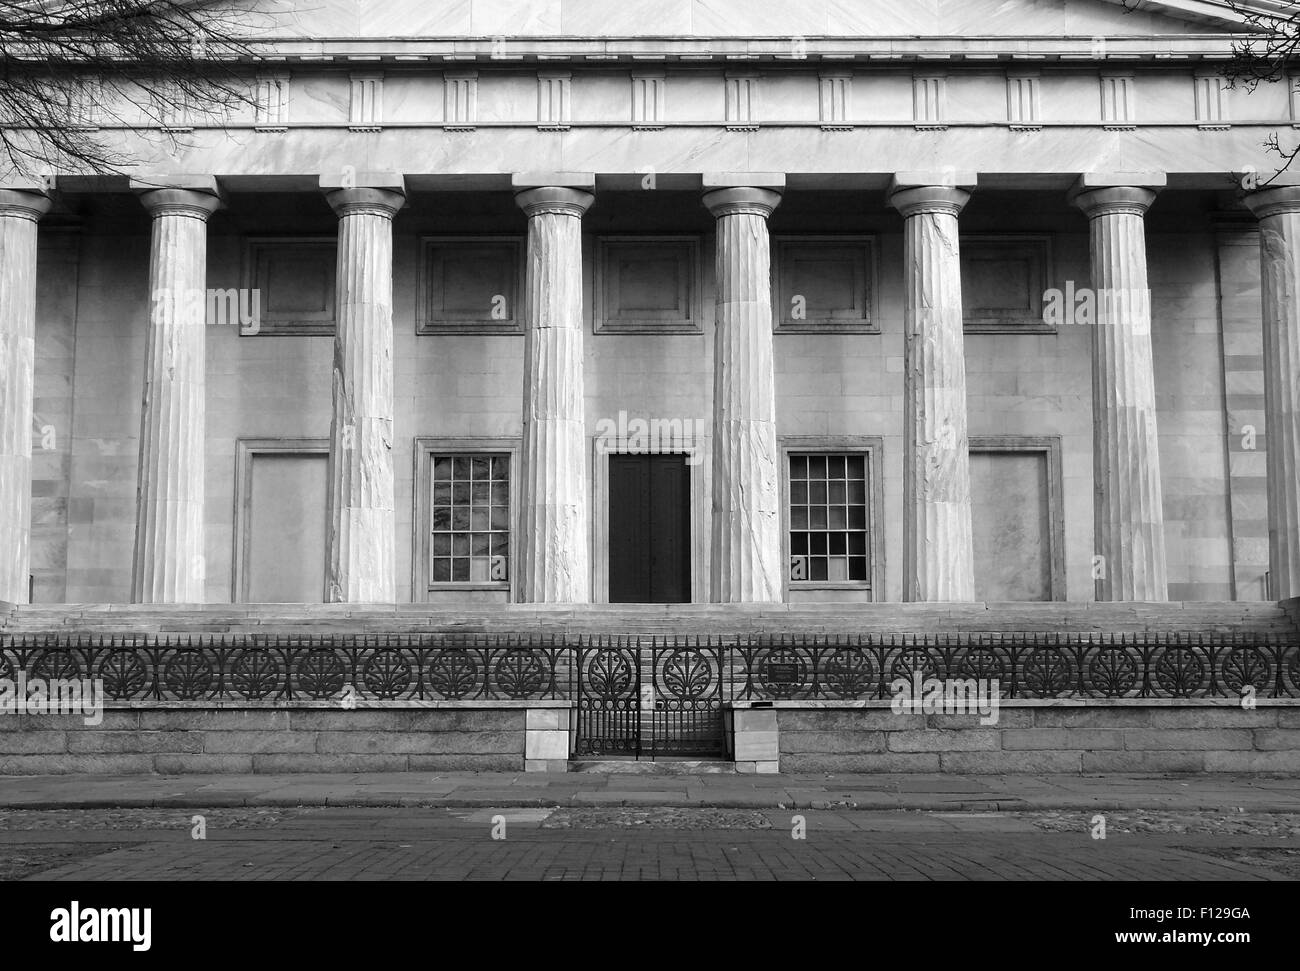 The historic Second National Bank building at Independence National Park in black and white. - Stock Image